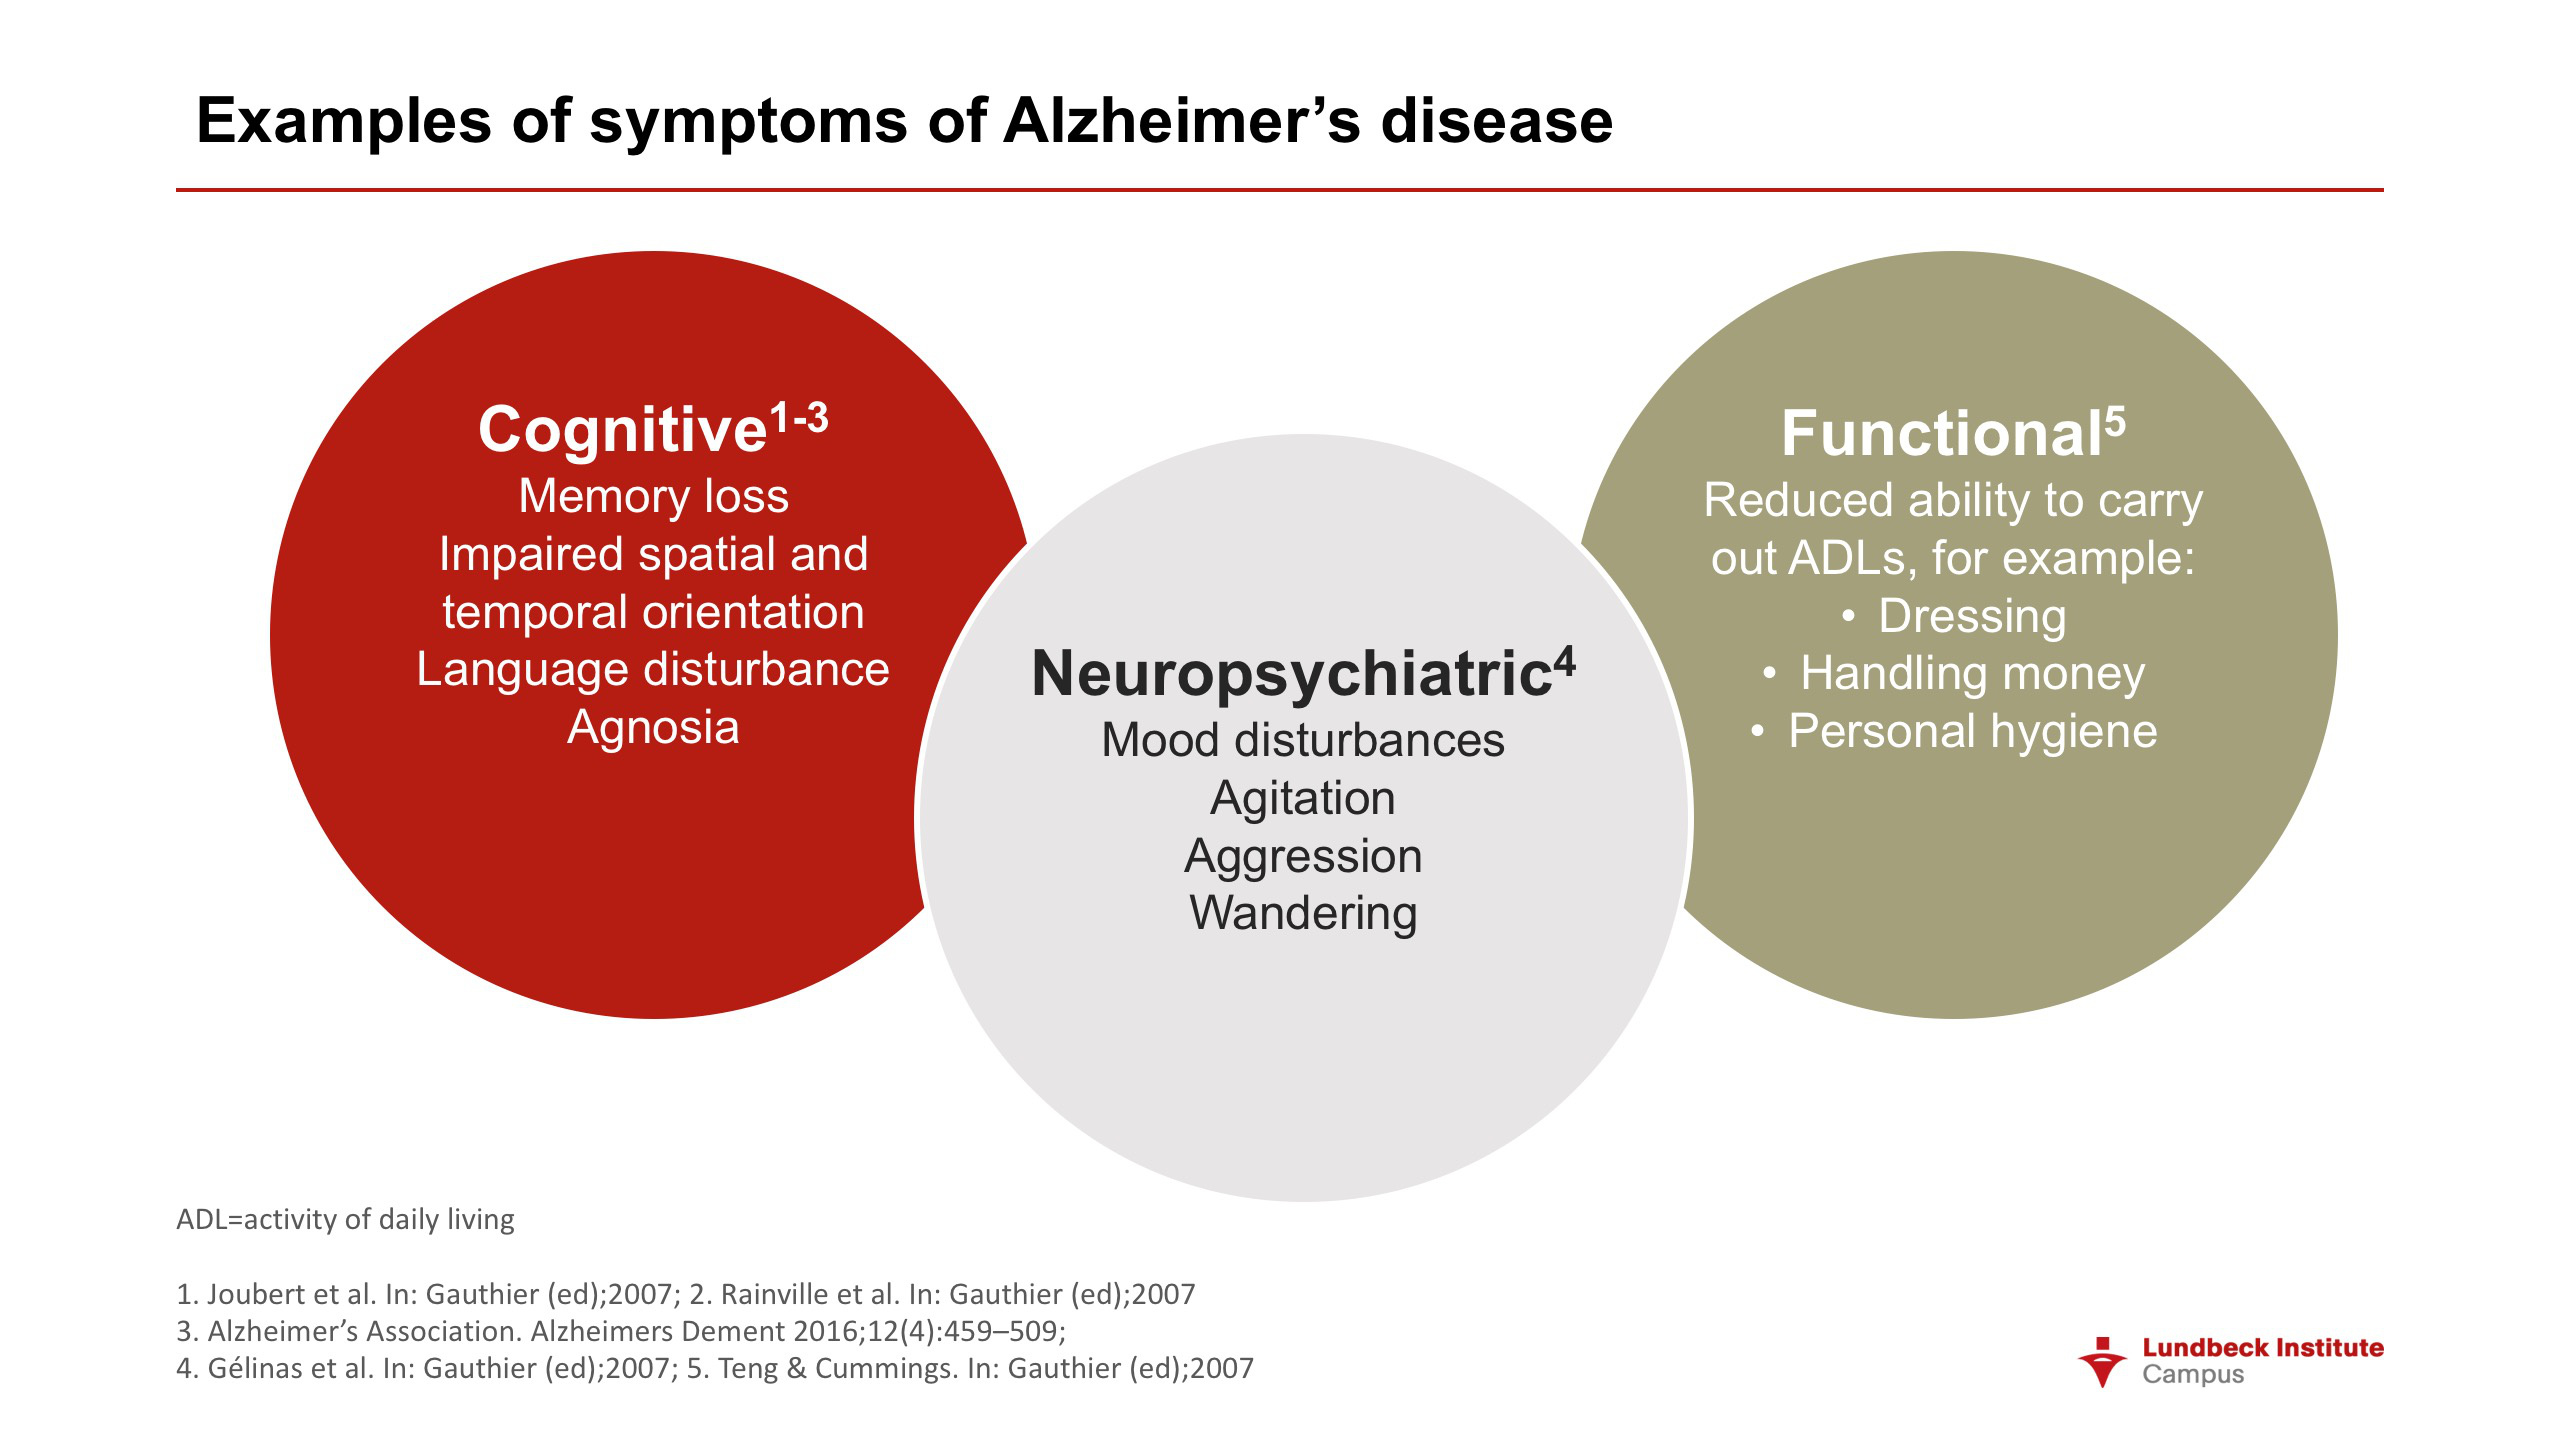 Examples of symptoms of Alzheimer's disease